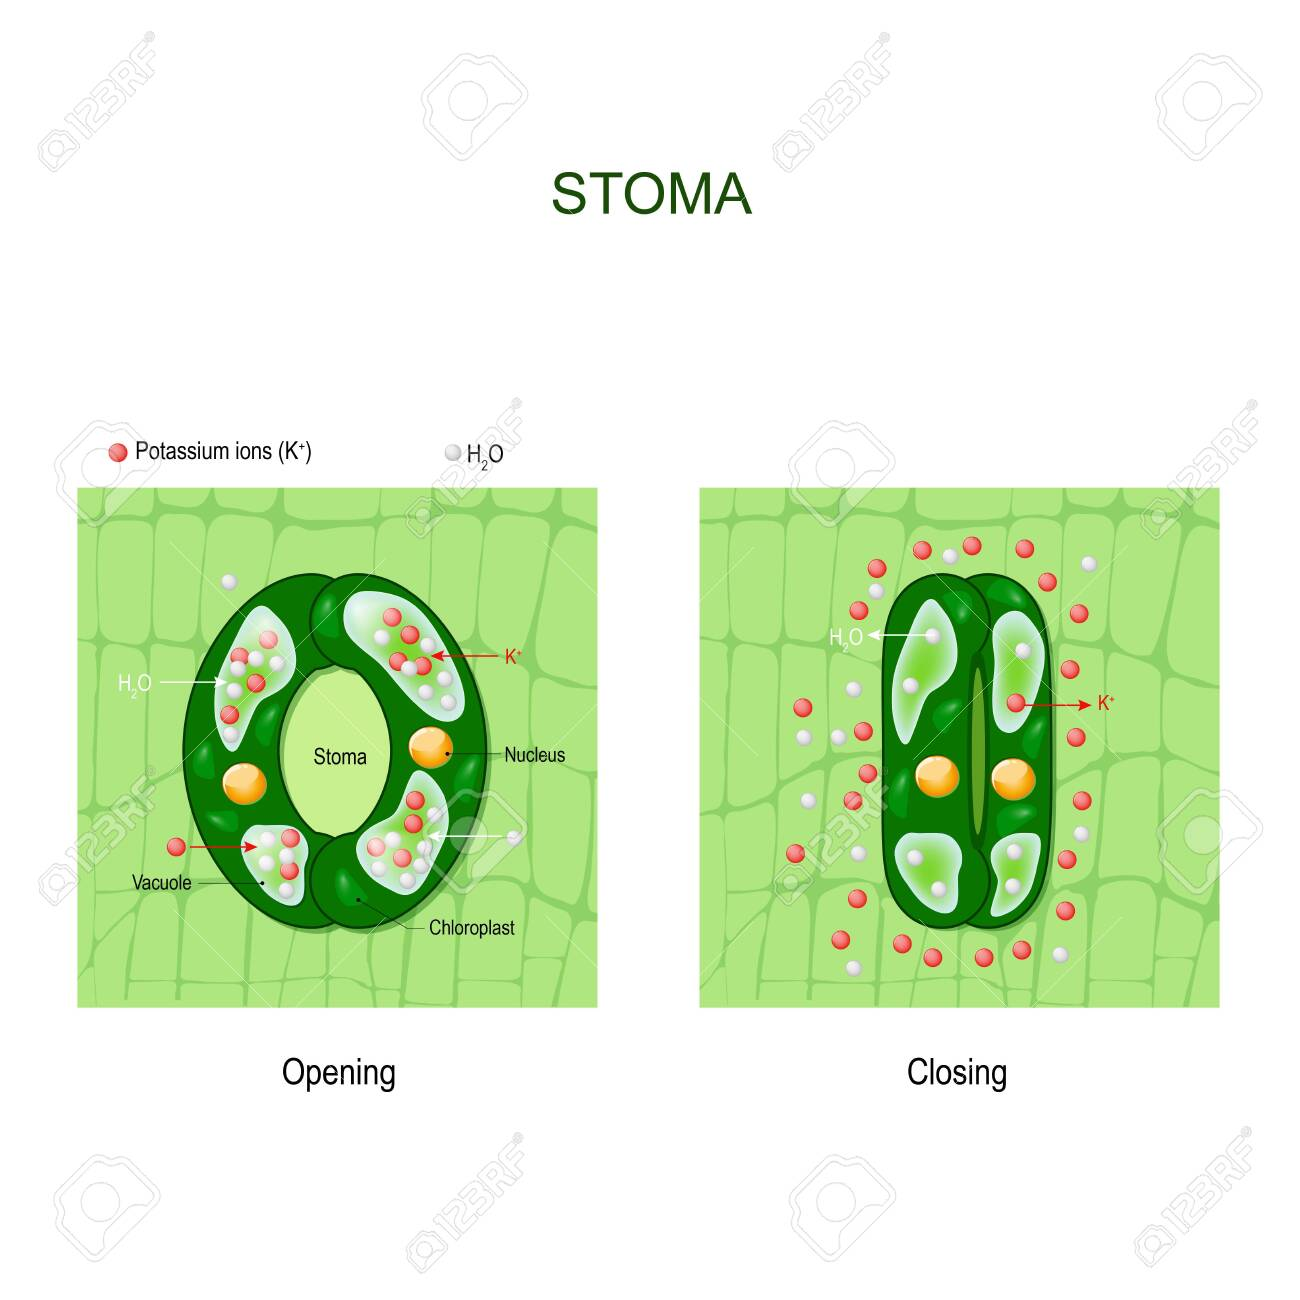 Opening and closing of stoma  anatomy of stomatal complex  Structure